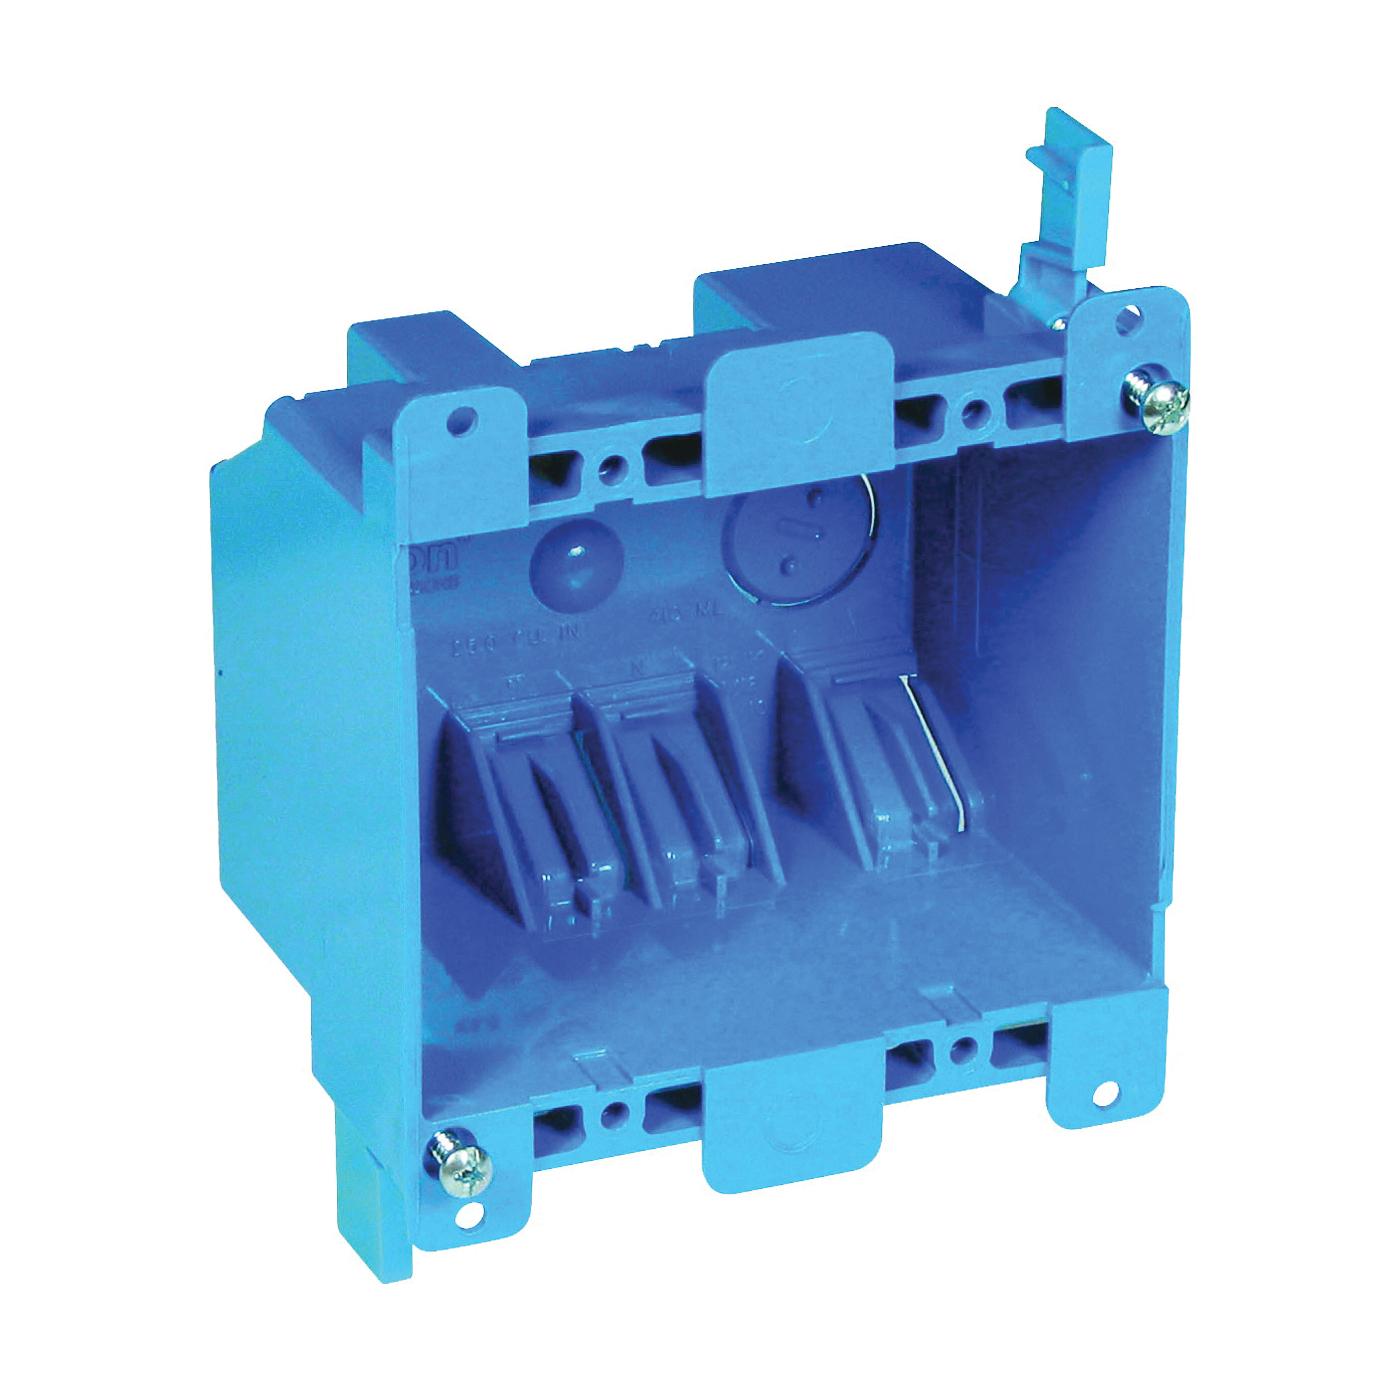 Picture of Carlon B225R-UPC Outlet Box, 2-Gang, PVC, Blue, Clamp Mounting